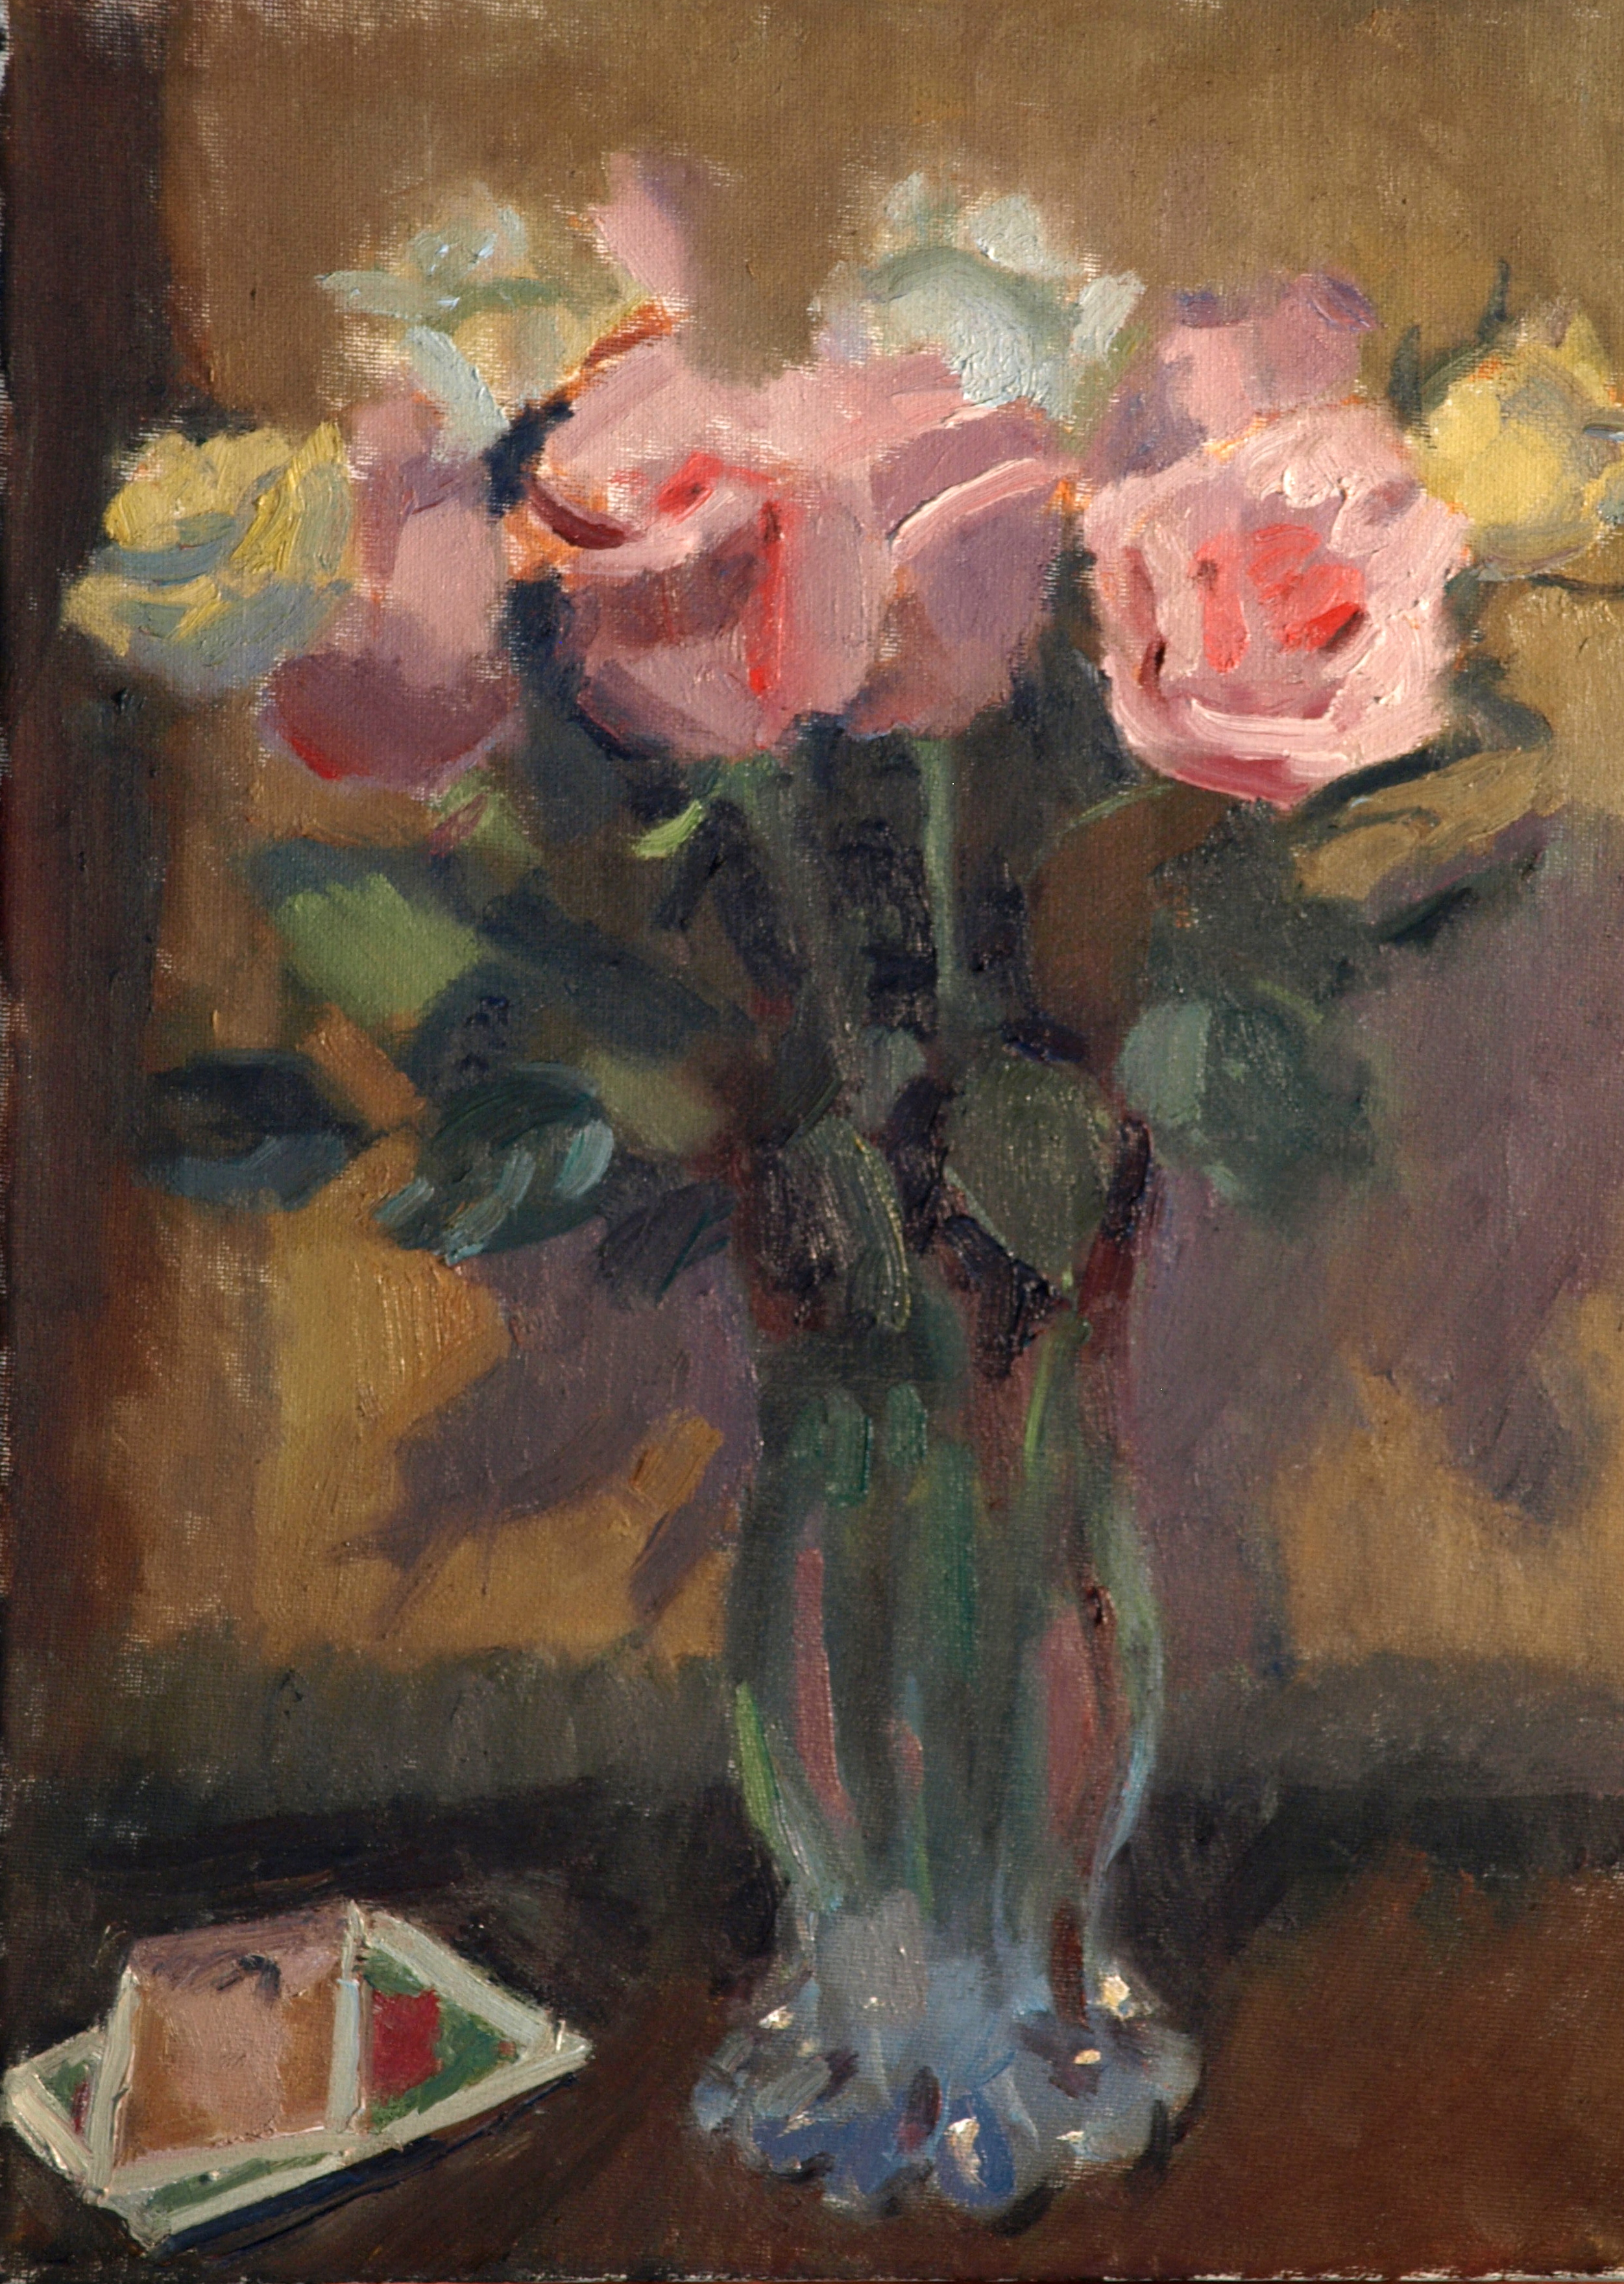 Notecards and Roses, Oil on Canvas on Panel, 16 x 12 Inches, by Susan Grisell, $275